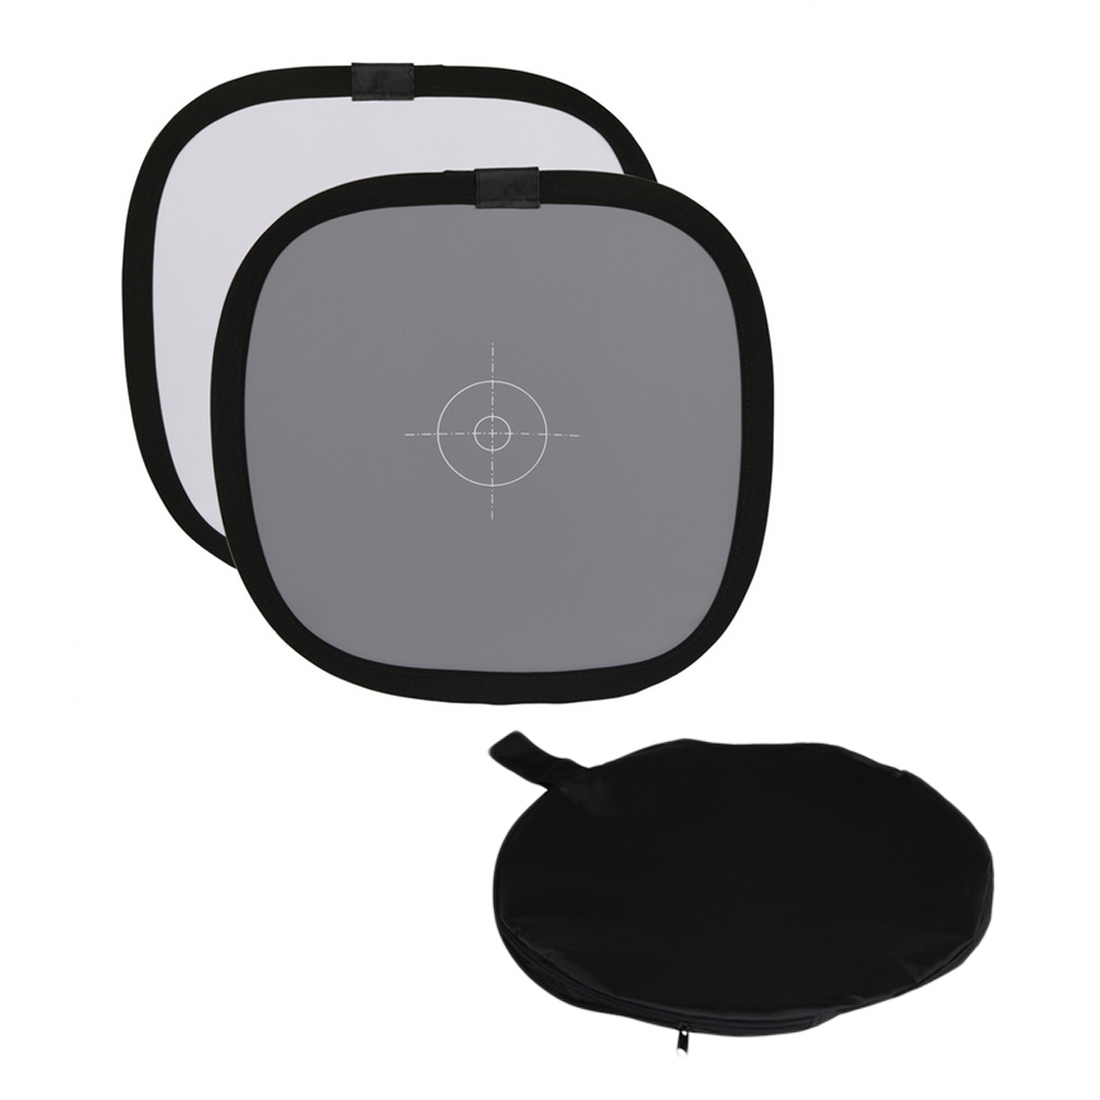 "Centechia 12 "" Inch 30cm 18% Foldable Gray Card Reflector White Balance Double Face Focusing Board With Carry Bag"